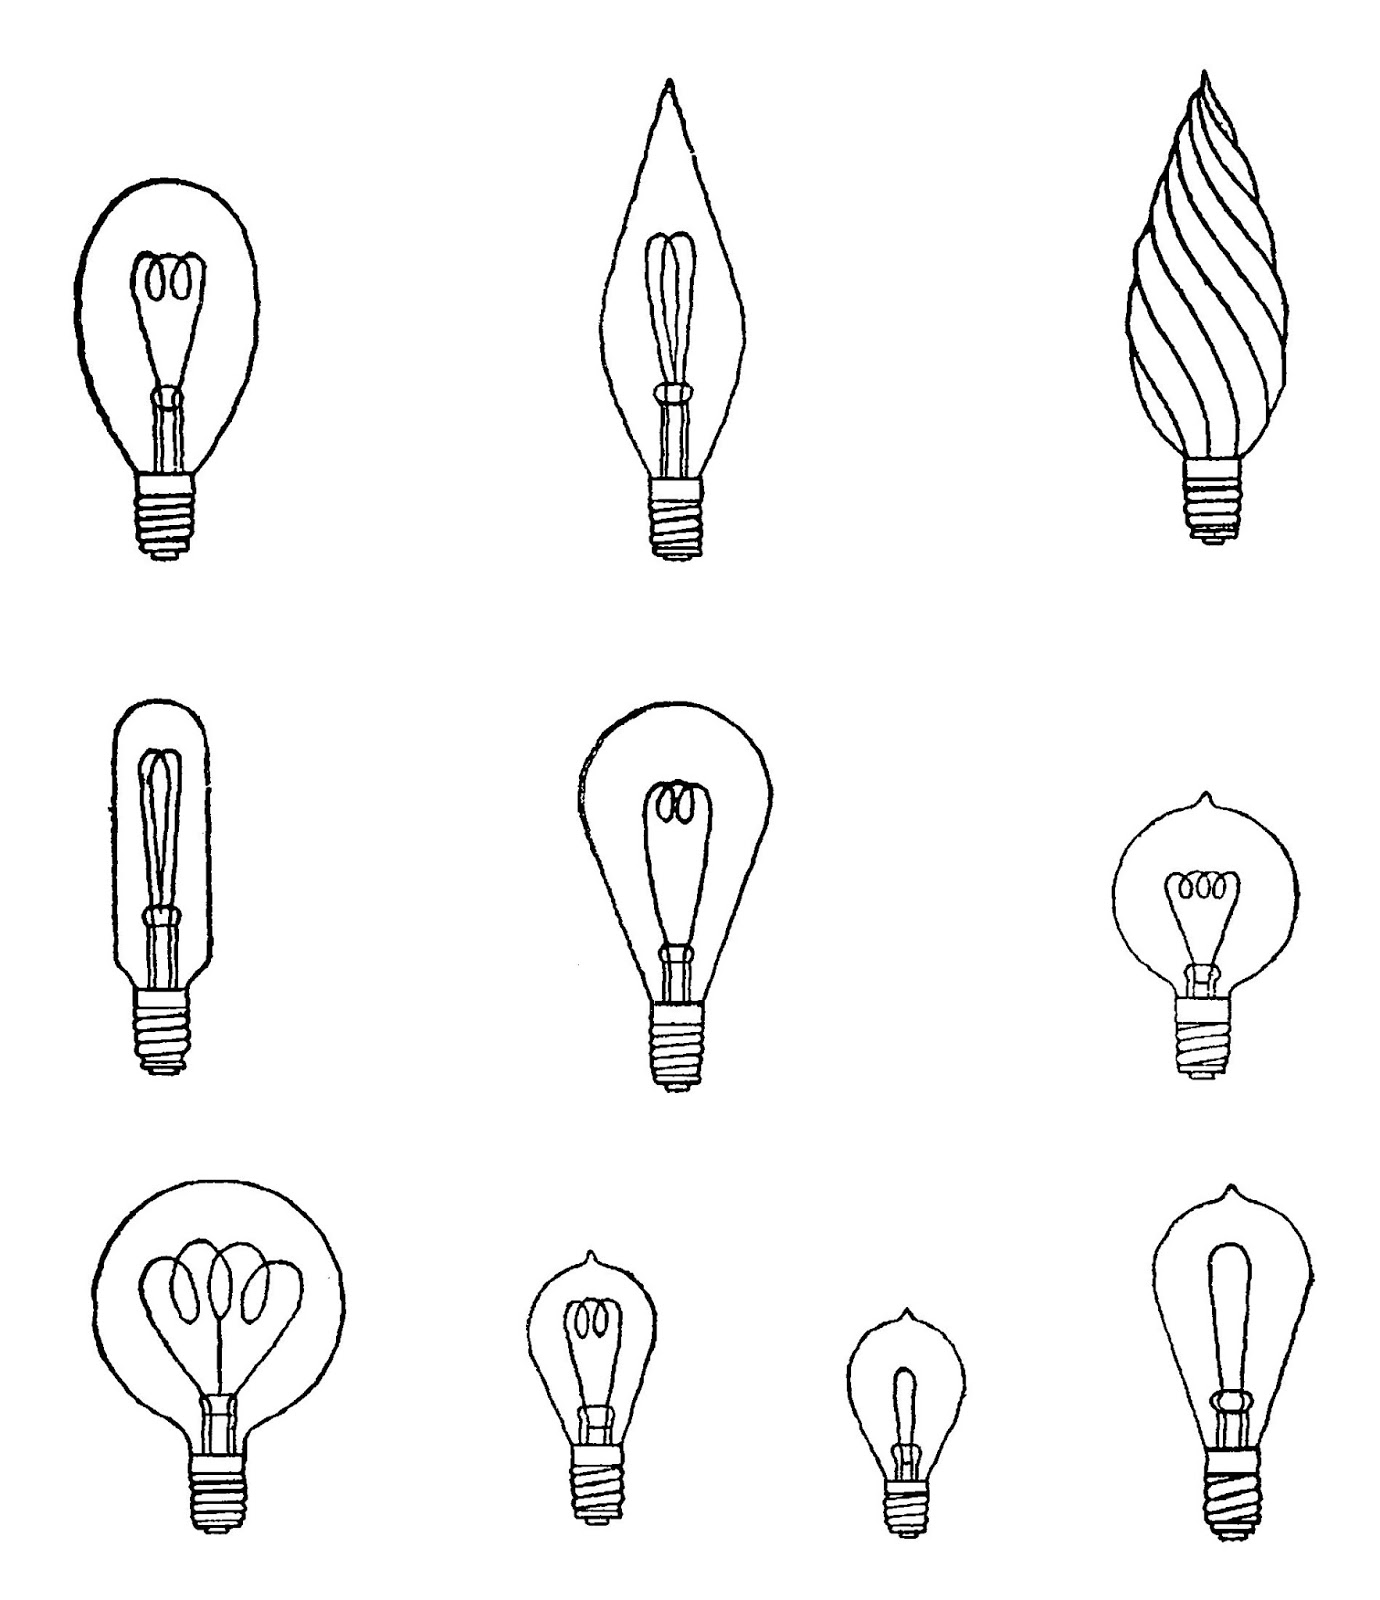 graphic about Light Bulb Printable called Electronic Stamp Style: No cost Collage Sheet Printable Basic